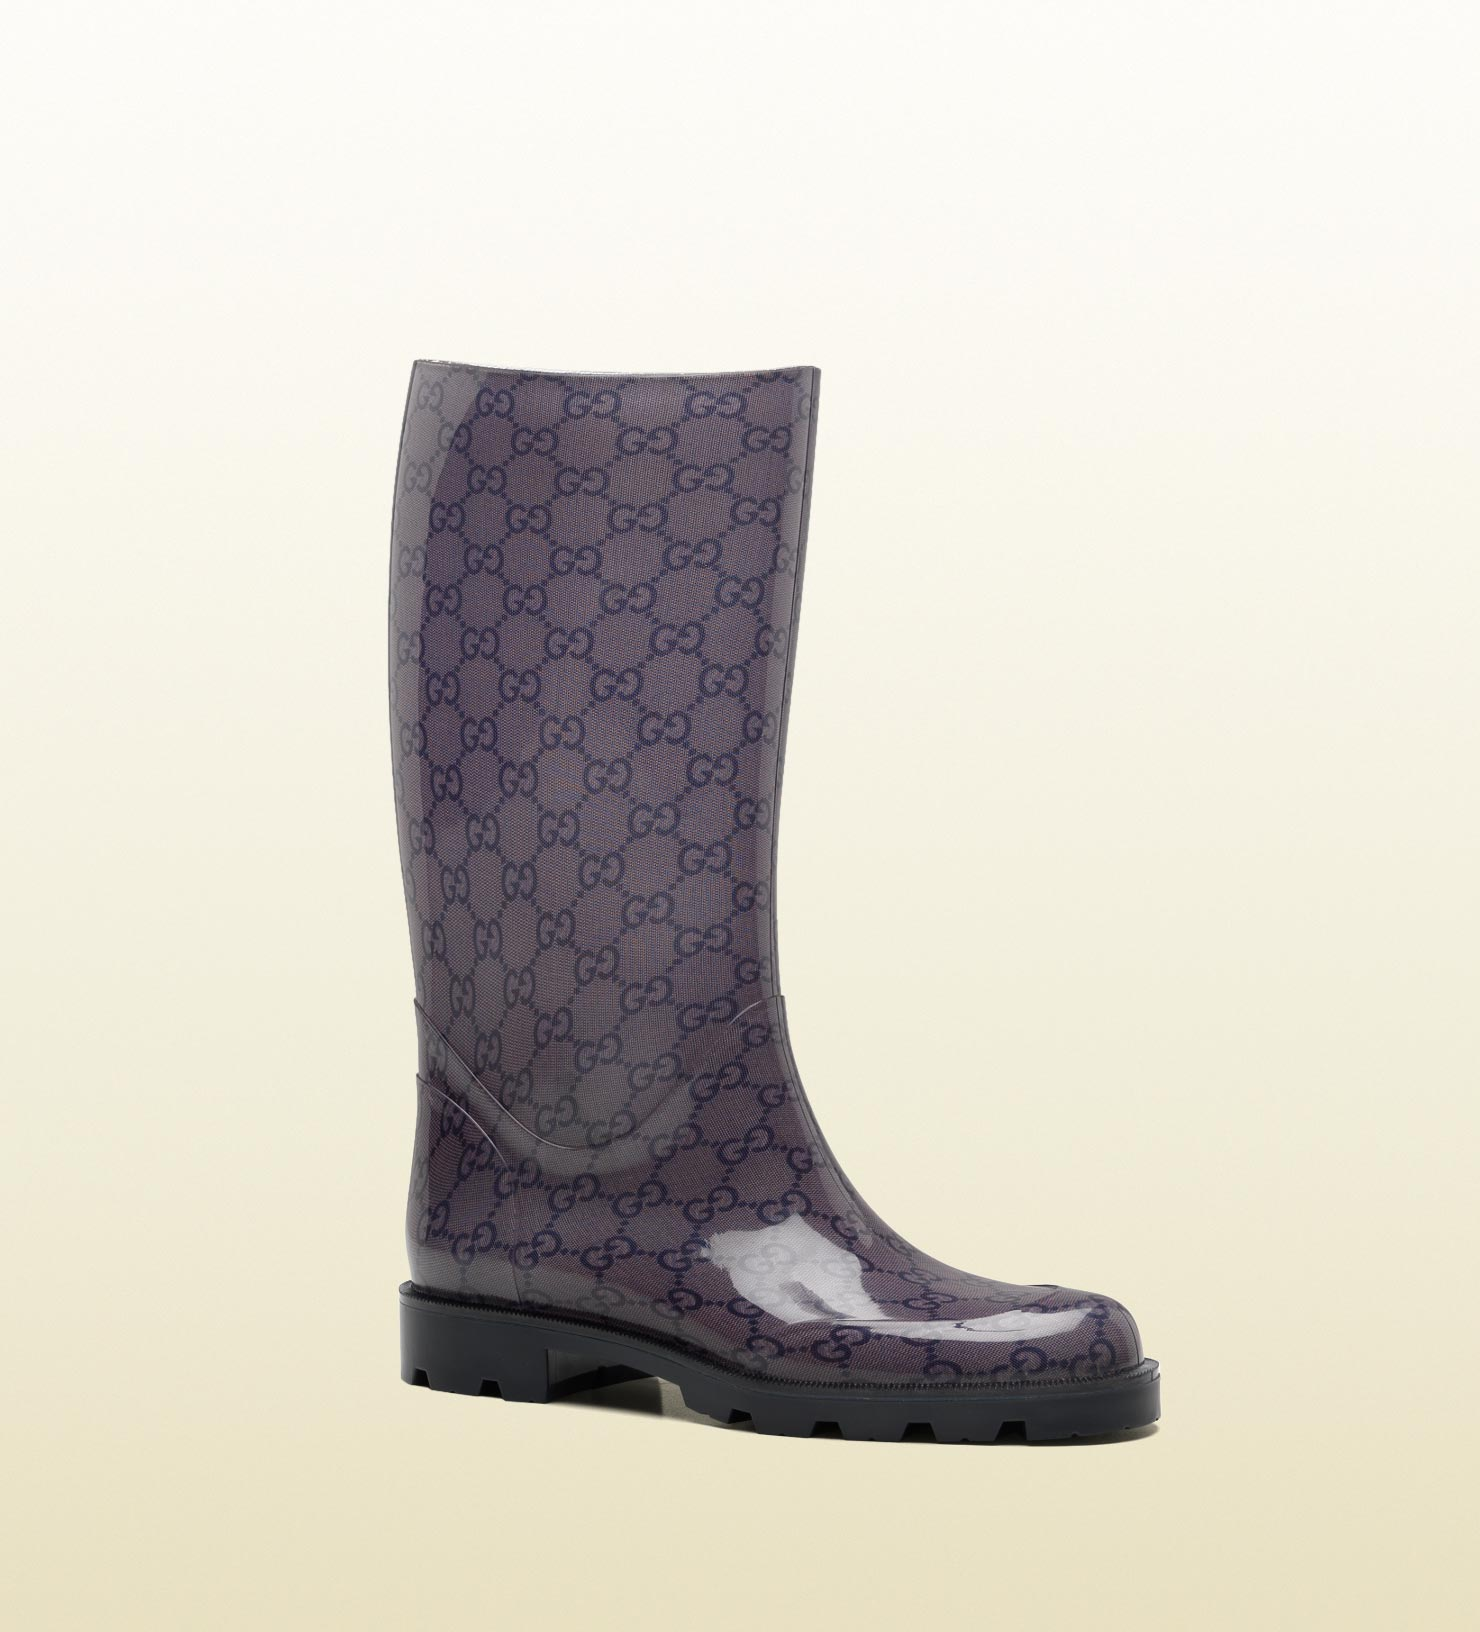 Simple Kamik Womens Boots - Jenny - Charcoal - Spinners Sports